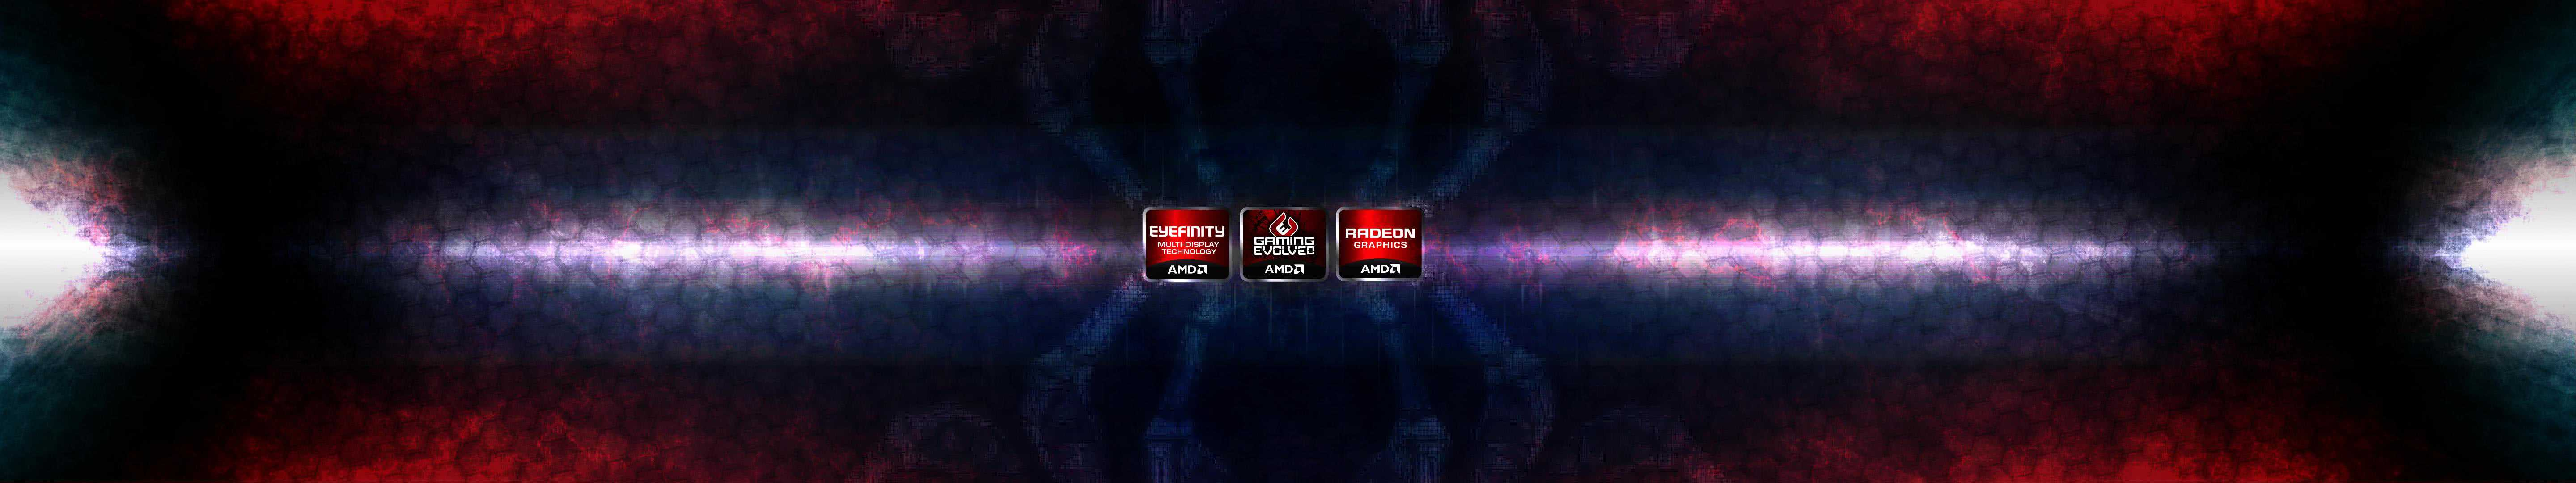 amd logo triple monitor wallpaper